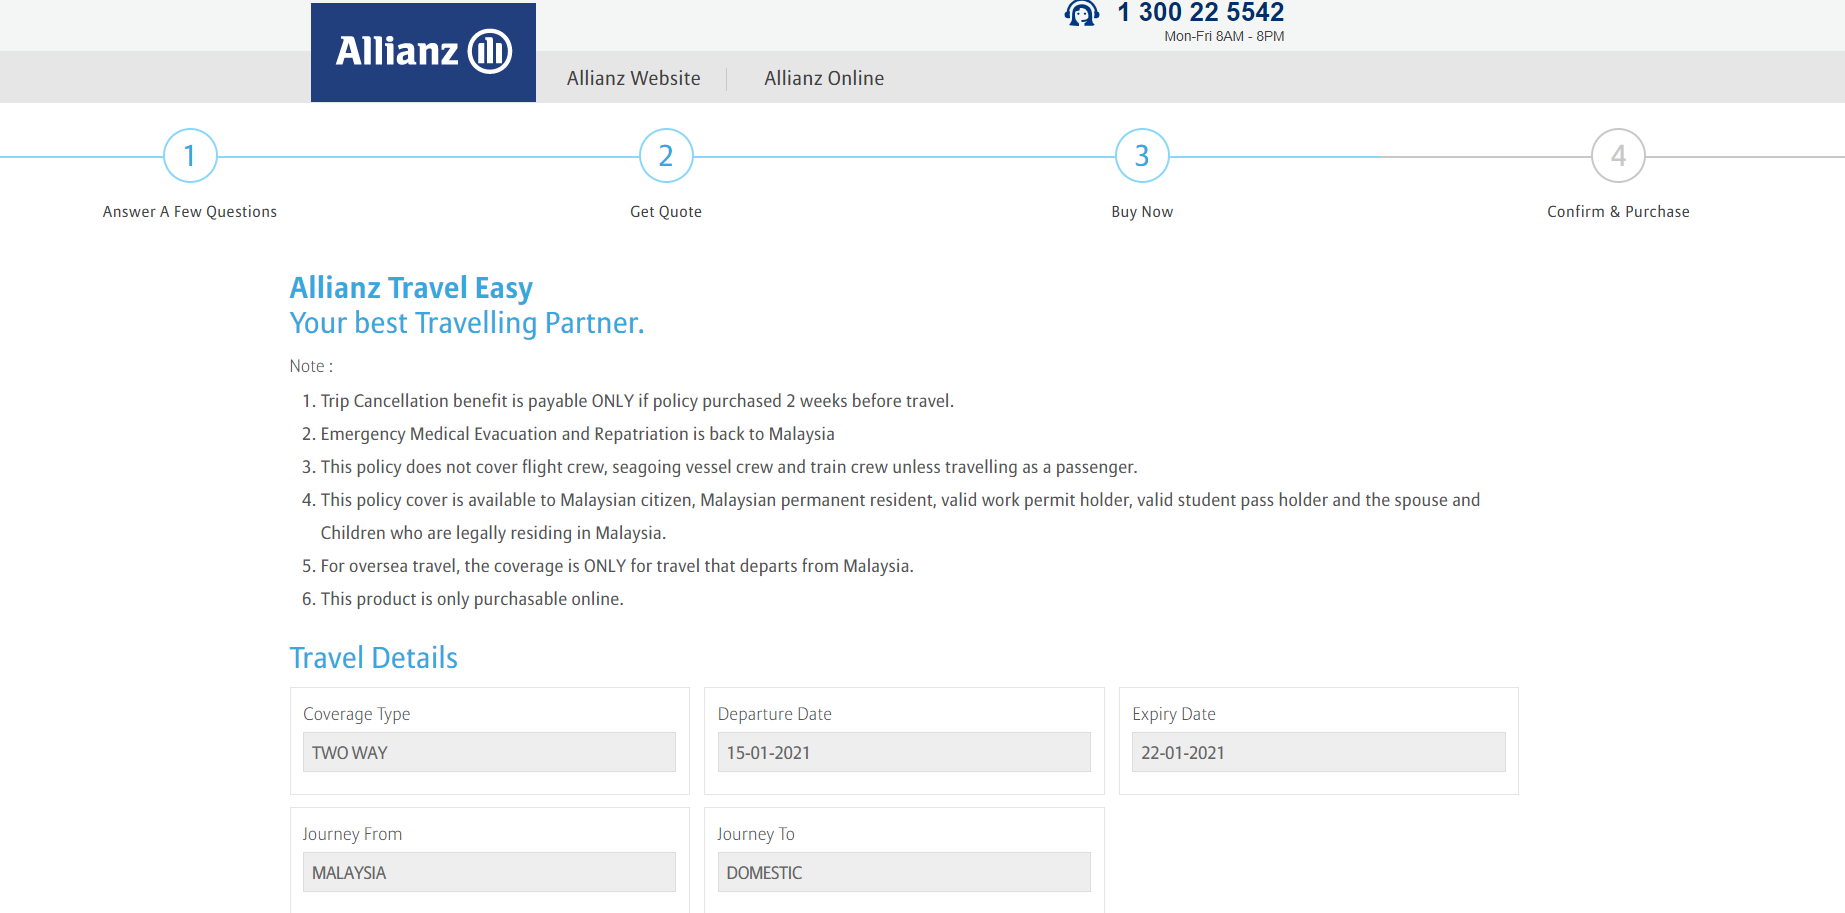 Allianz Payment Page - Digital Travel Insurance for Covid-19